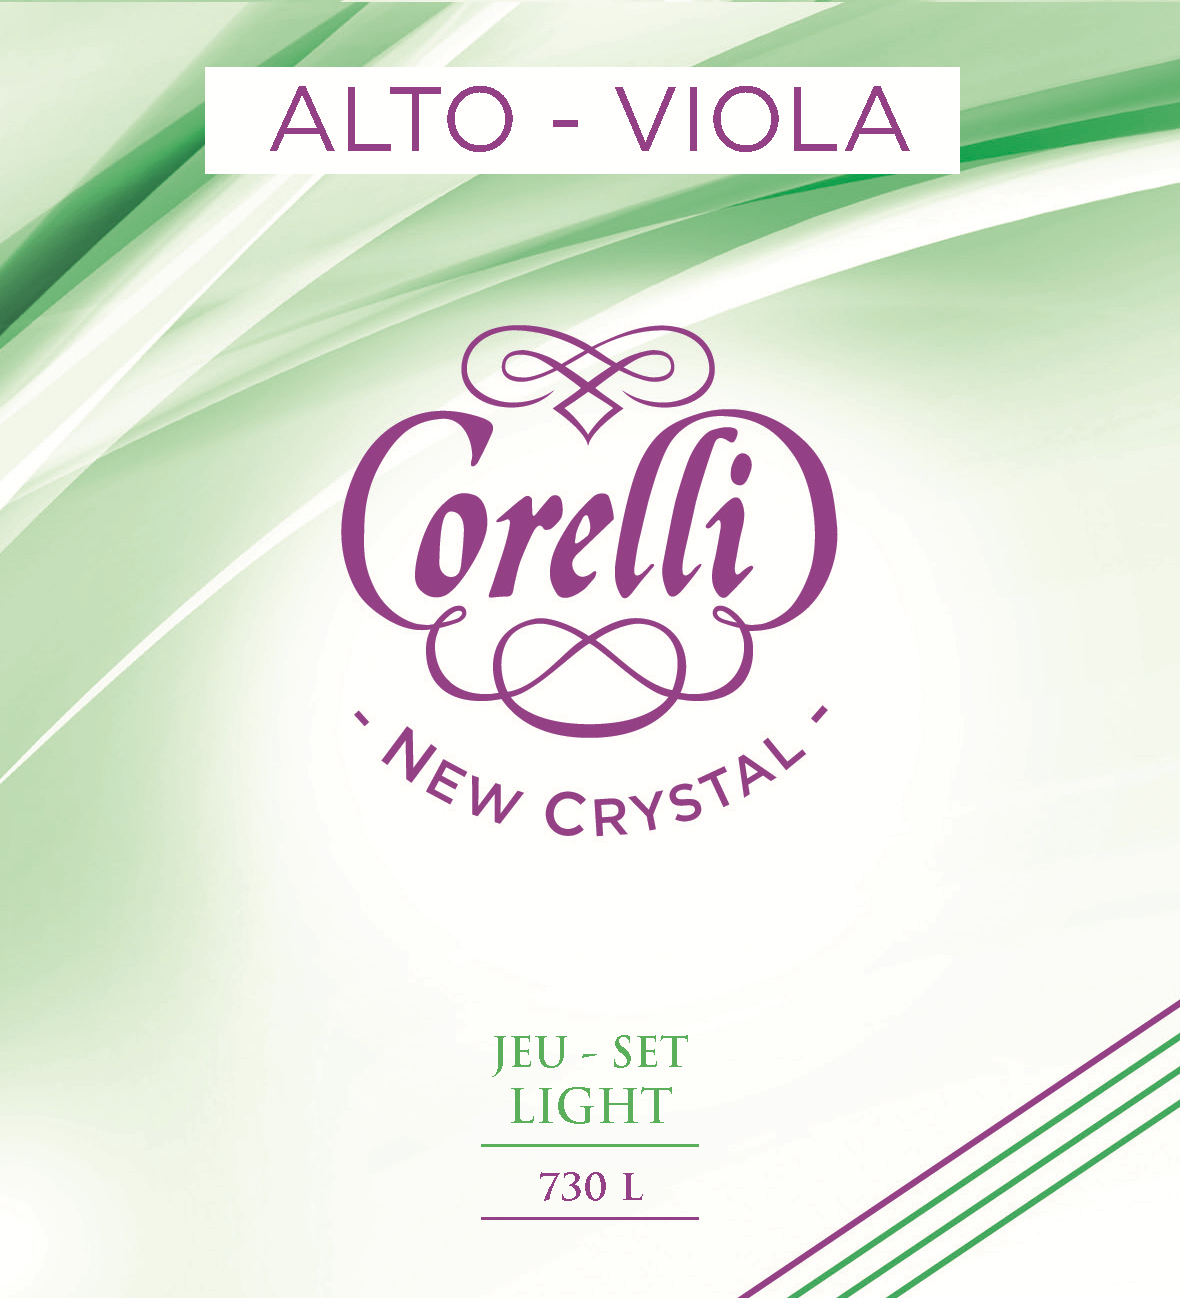 CORELLI NEW CRYSTAL LIGHT 730L ALTO